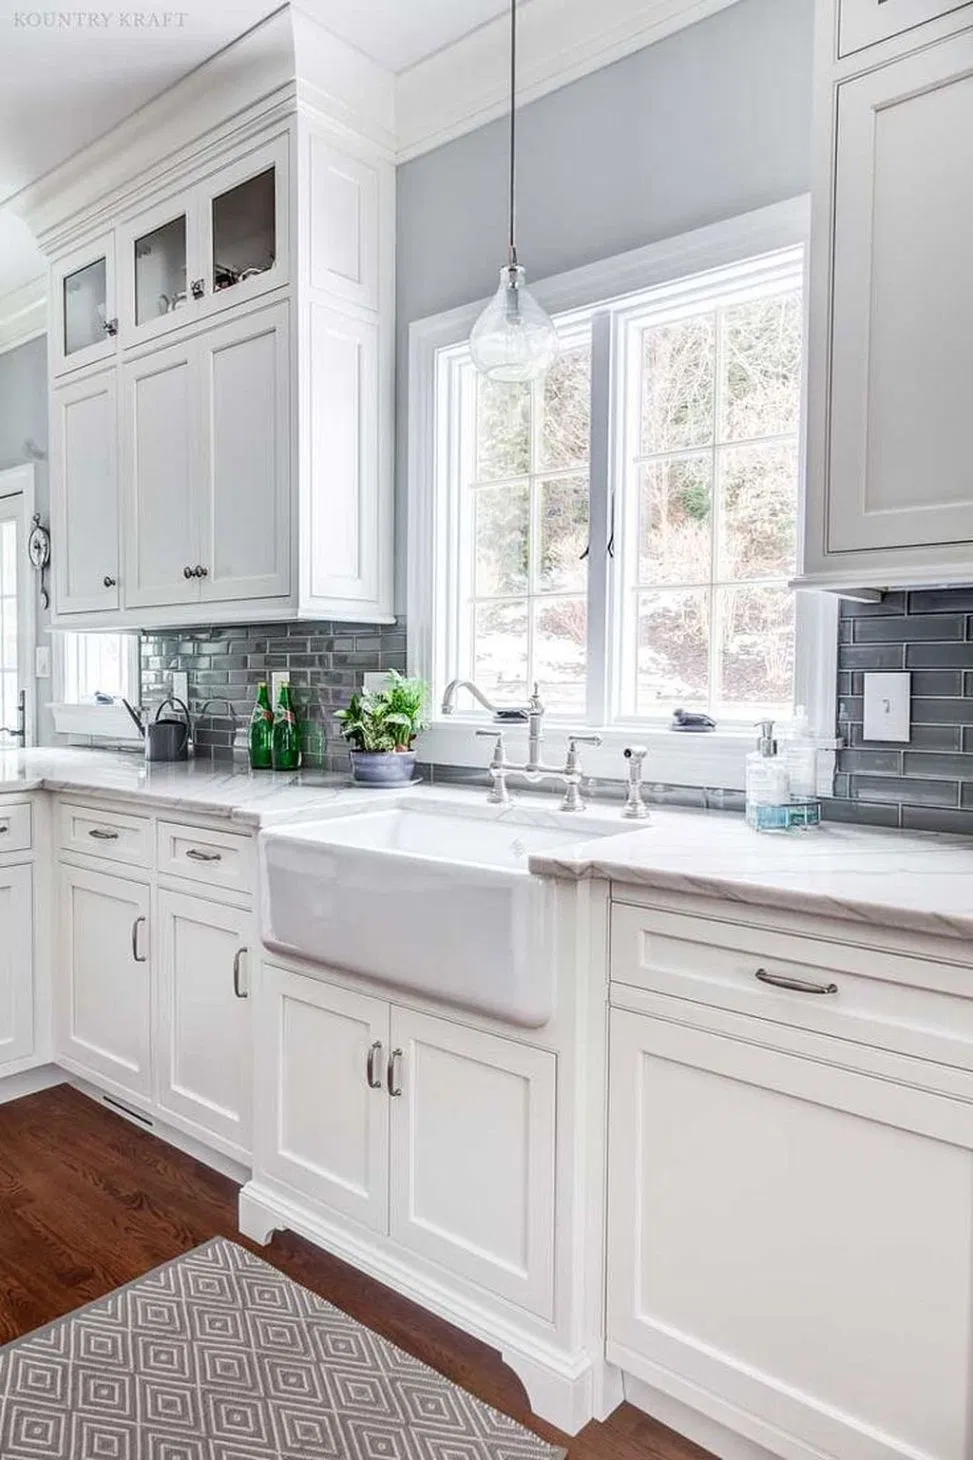 white traditional kitchen with white shaker cabinets, chrome bar pulls, grey backsplash and large white farmhouse sink